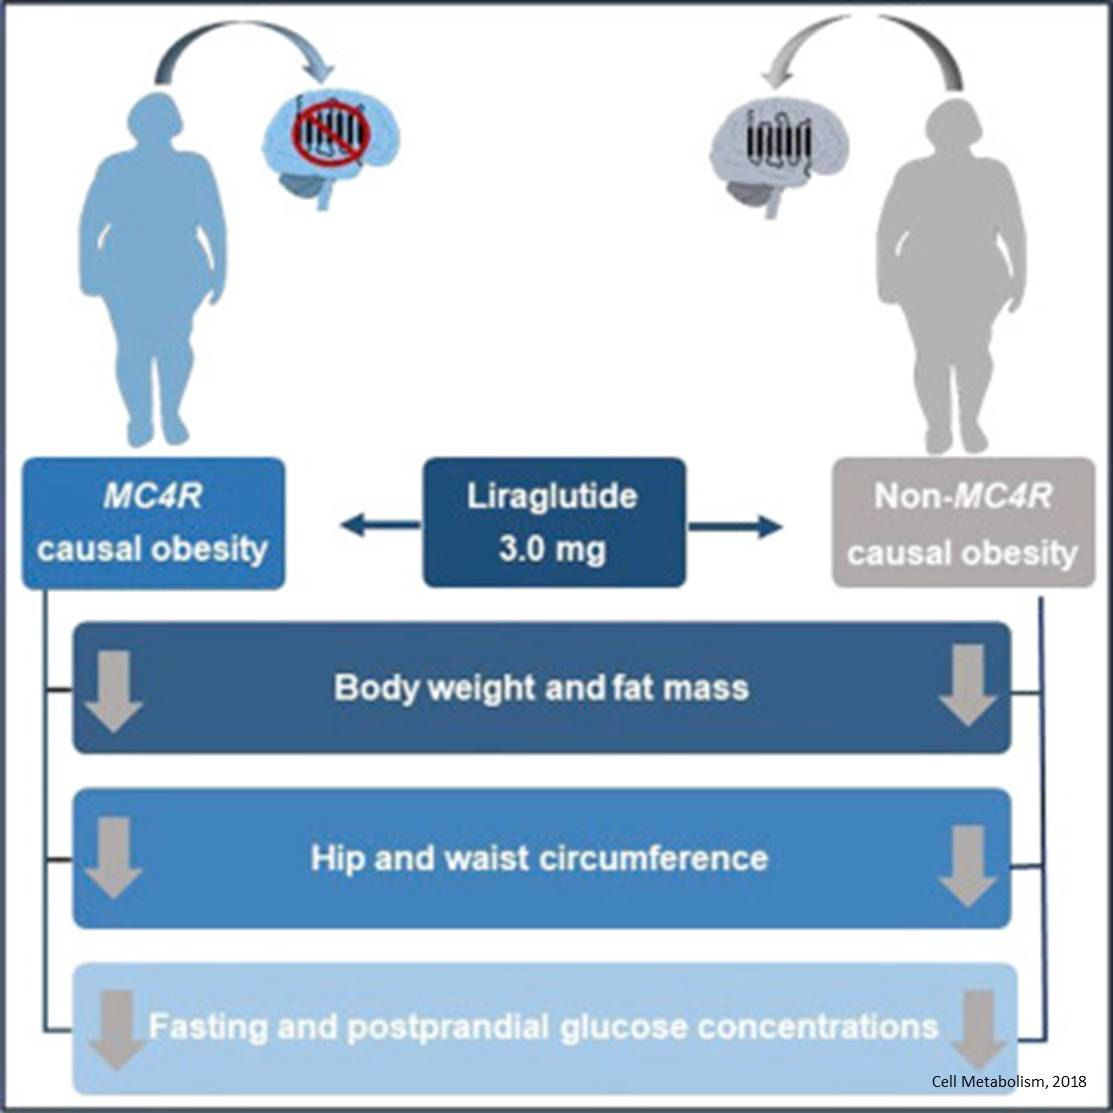 Treating genetic obesity